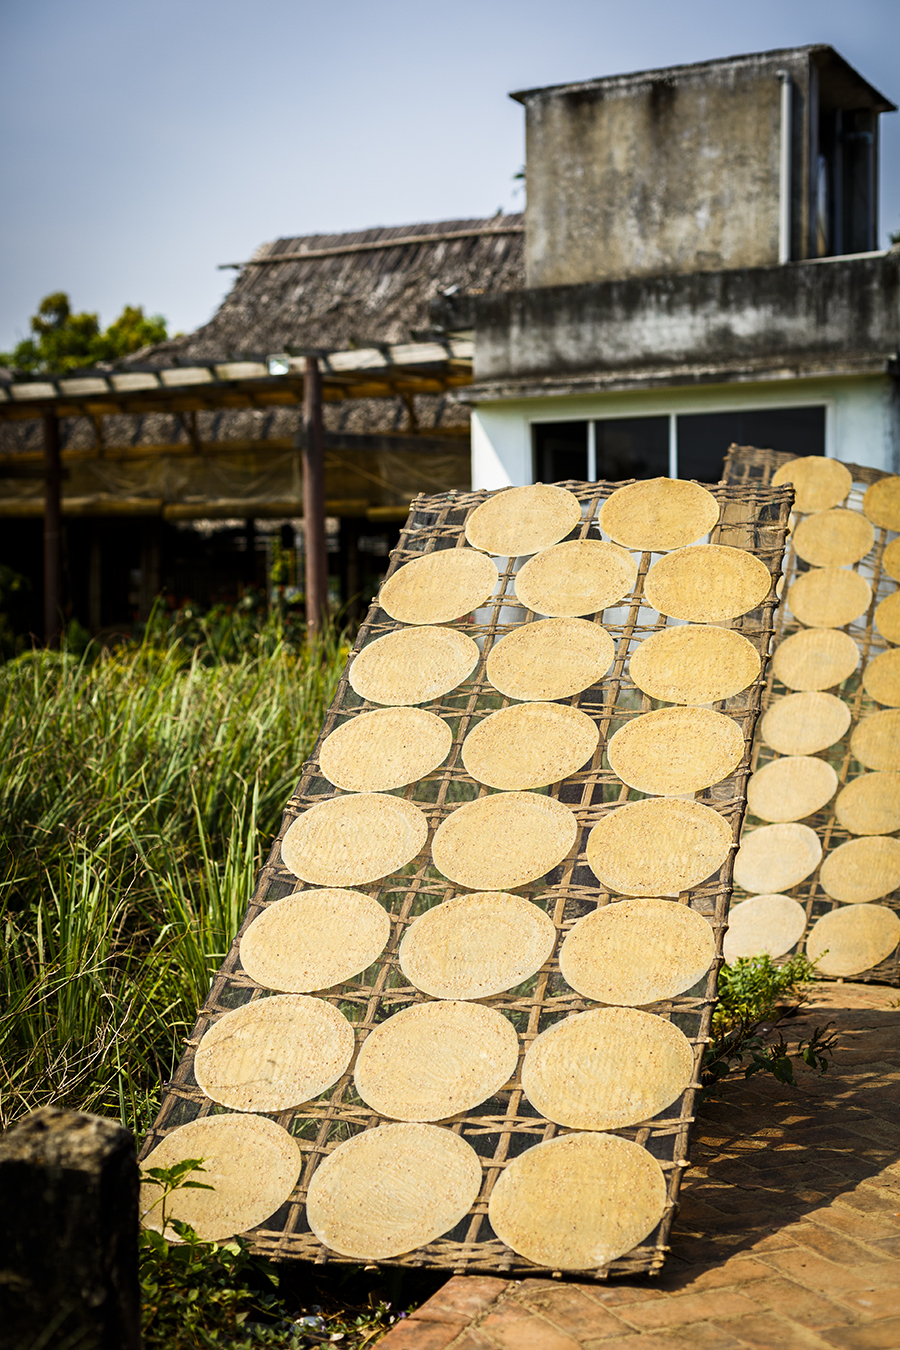 Rice sheets drying in the sun in Hoi An Vietnam